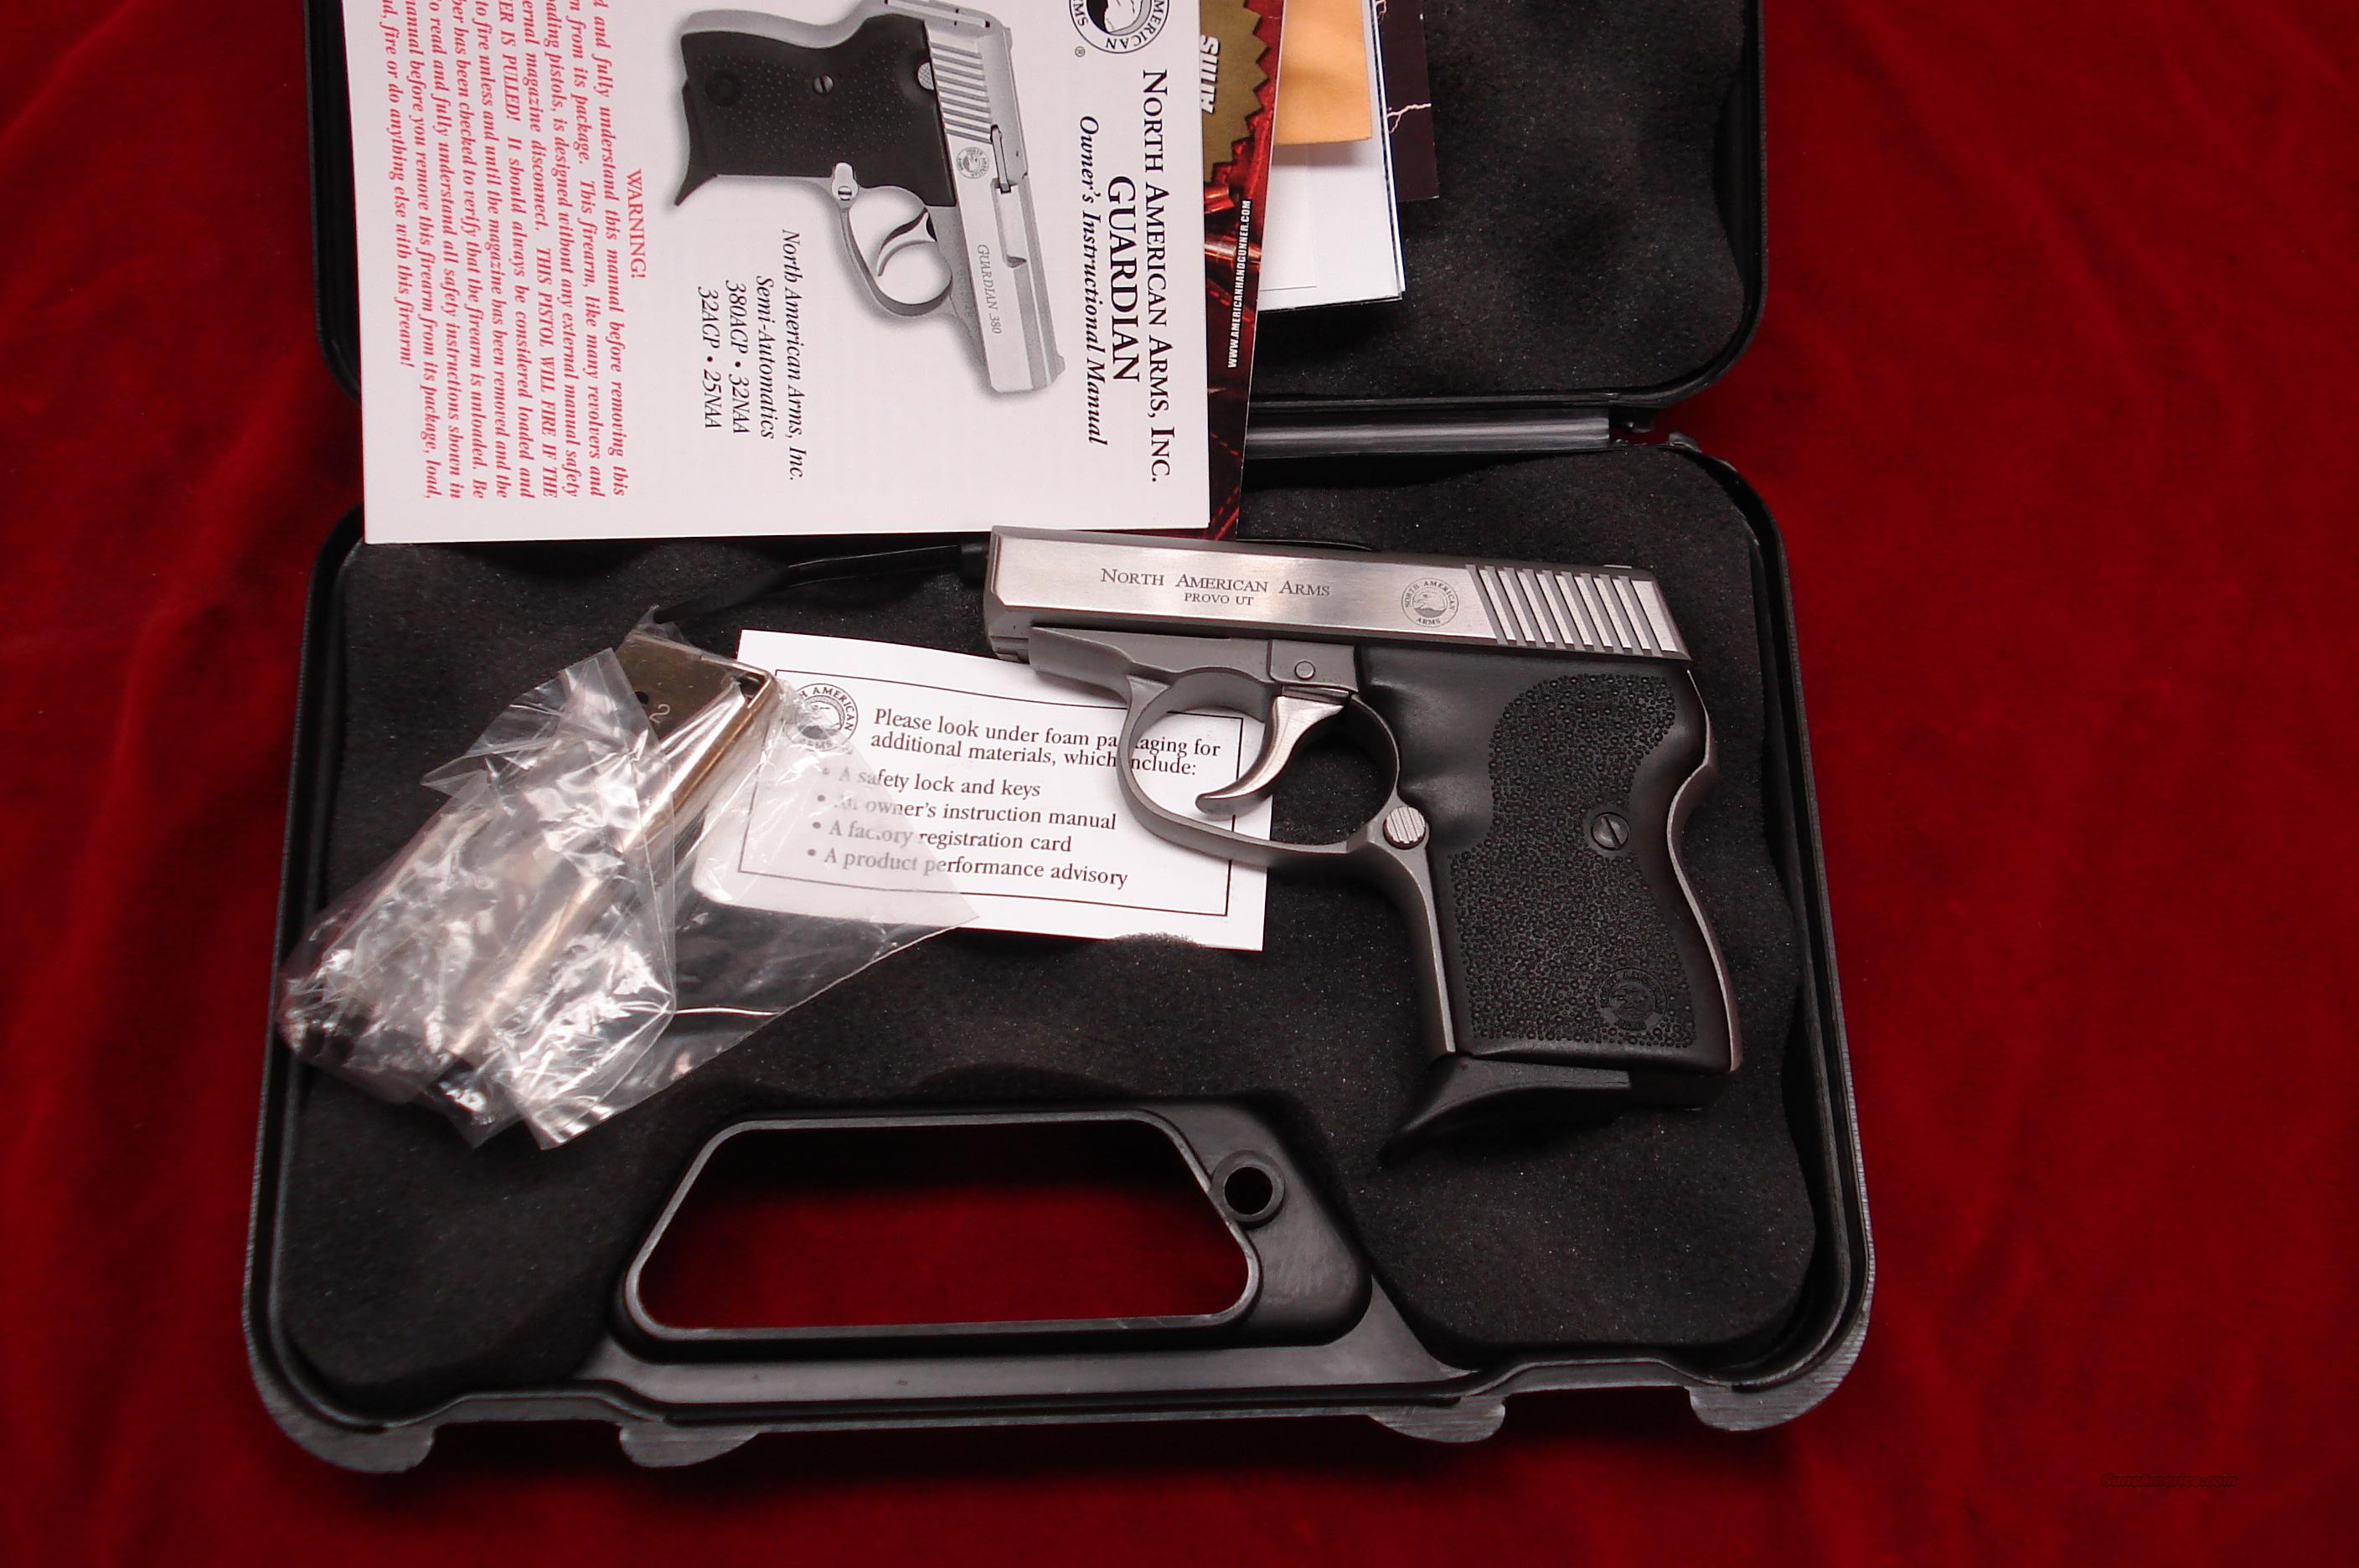 NORTH AMERICAN ARMS GUARDIAN 380 CAL. NEW  Guns > Pistols > North American Arms Pistols